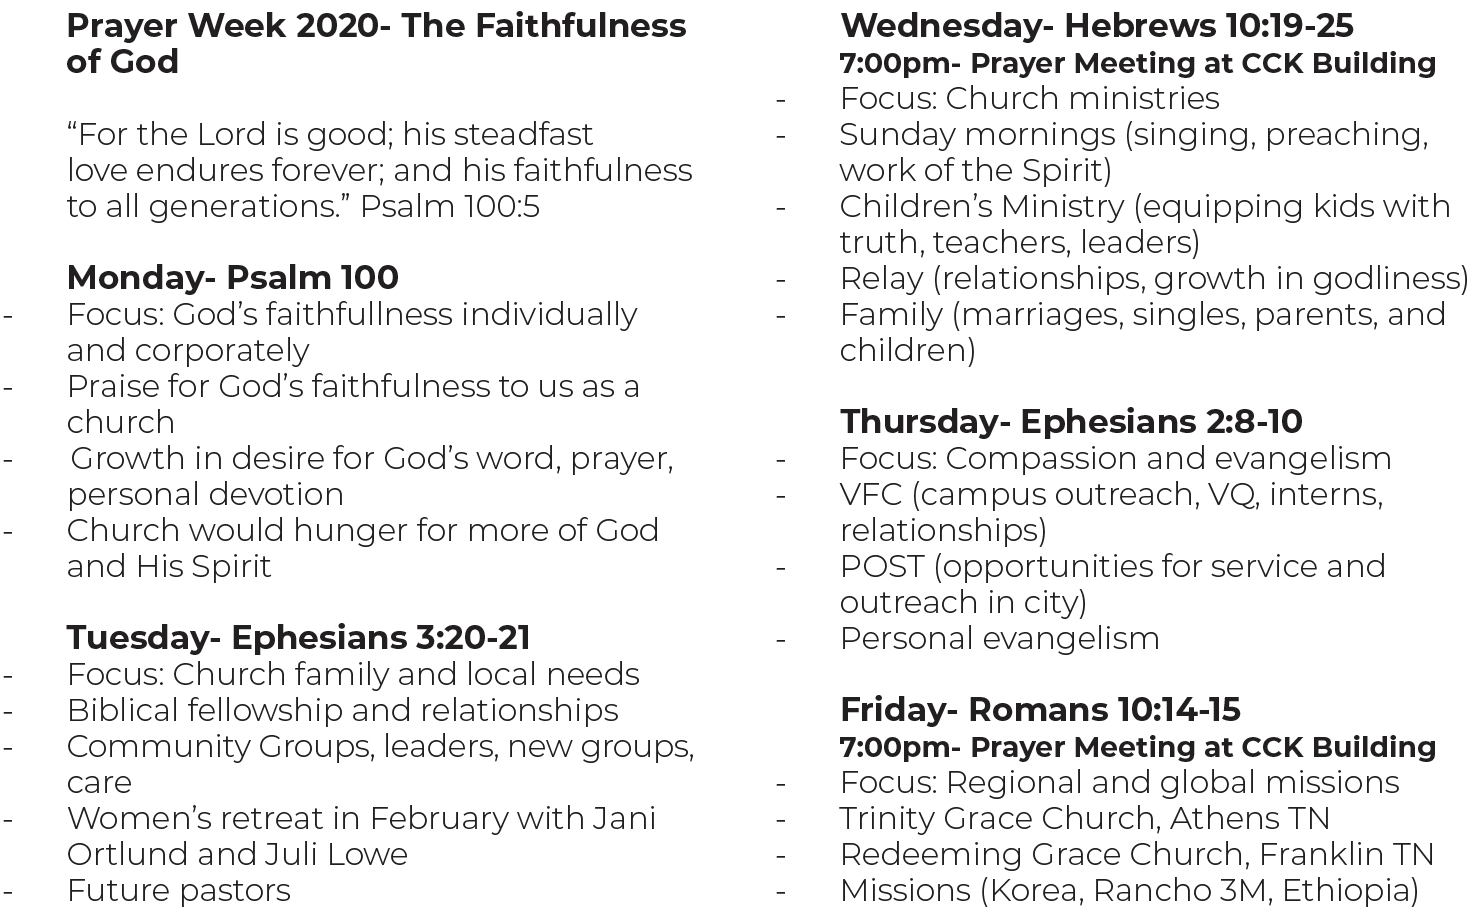 prayerweek2020.2